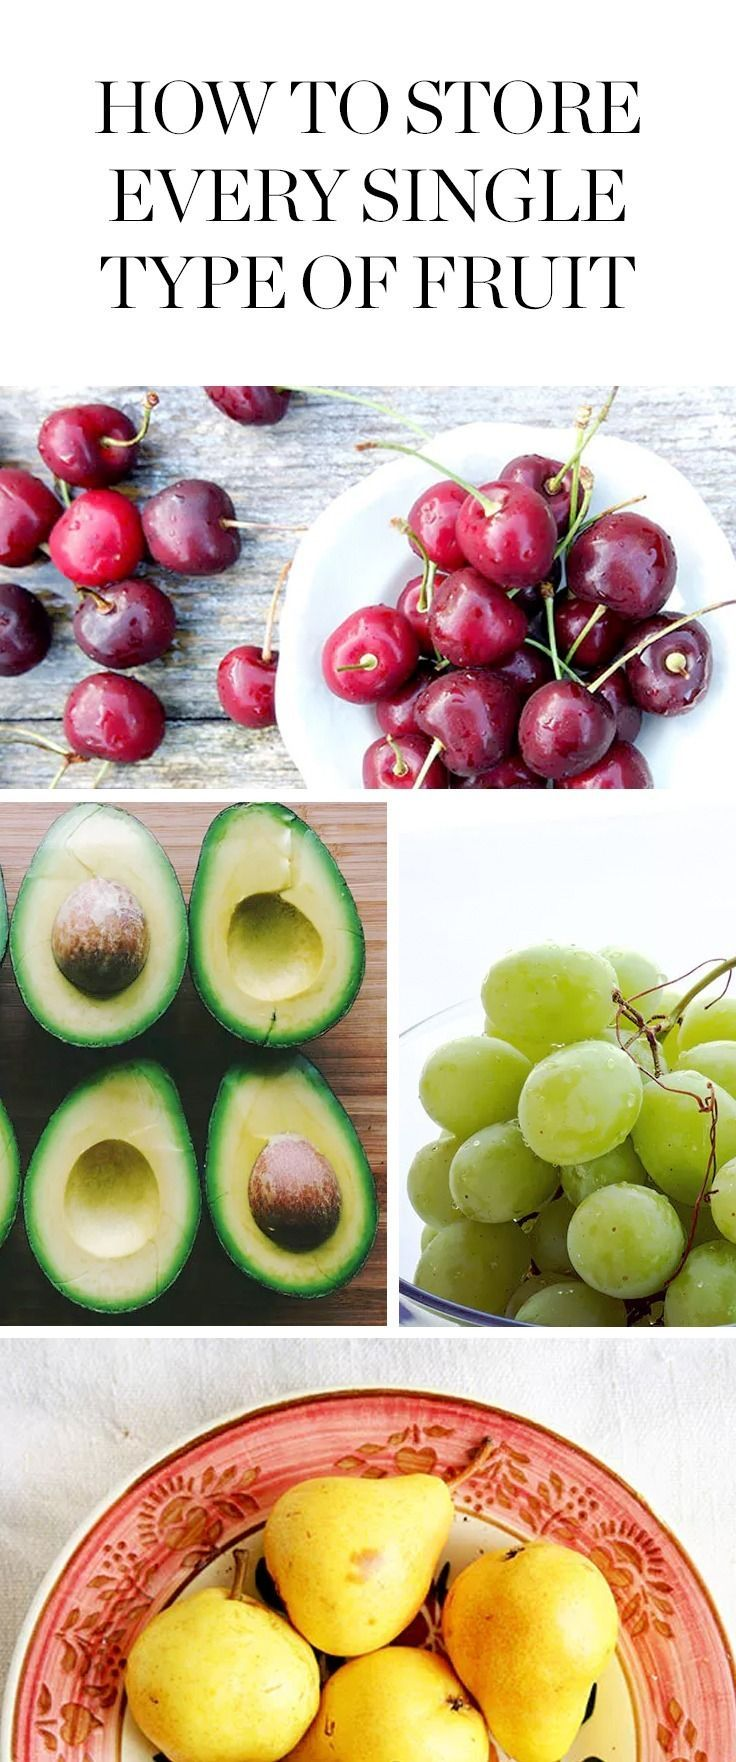 Here's a guide for storing every single type of fruit (even if it's half eaten).